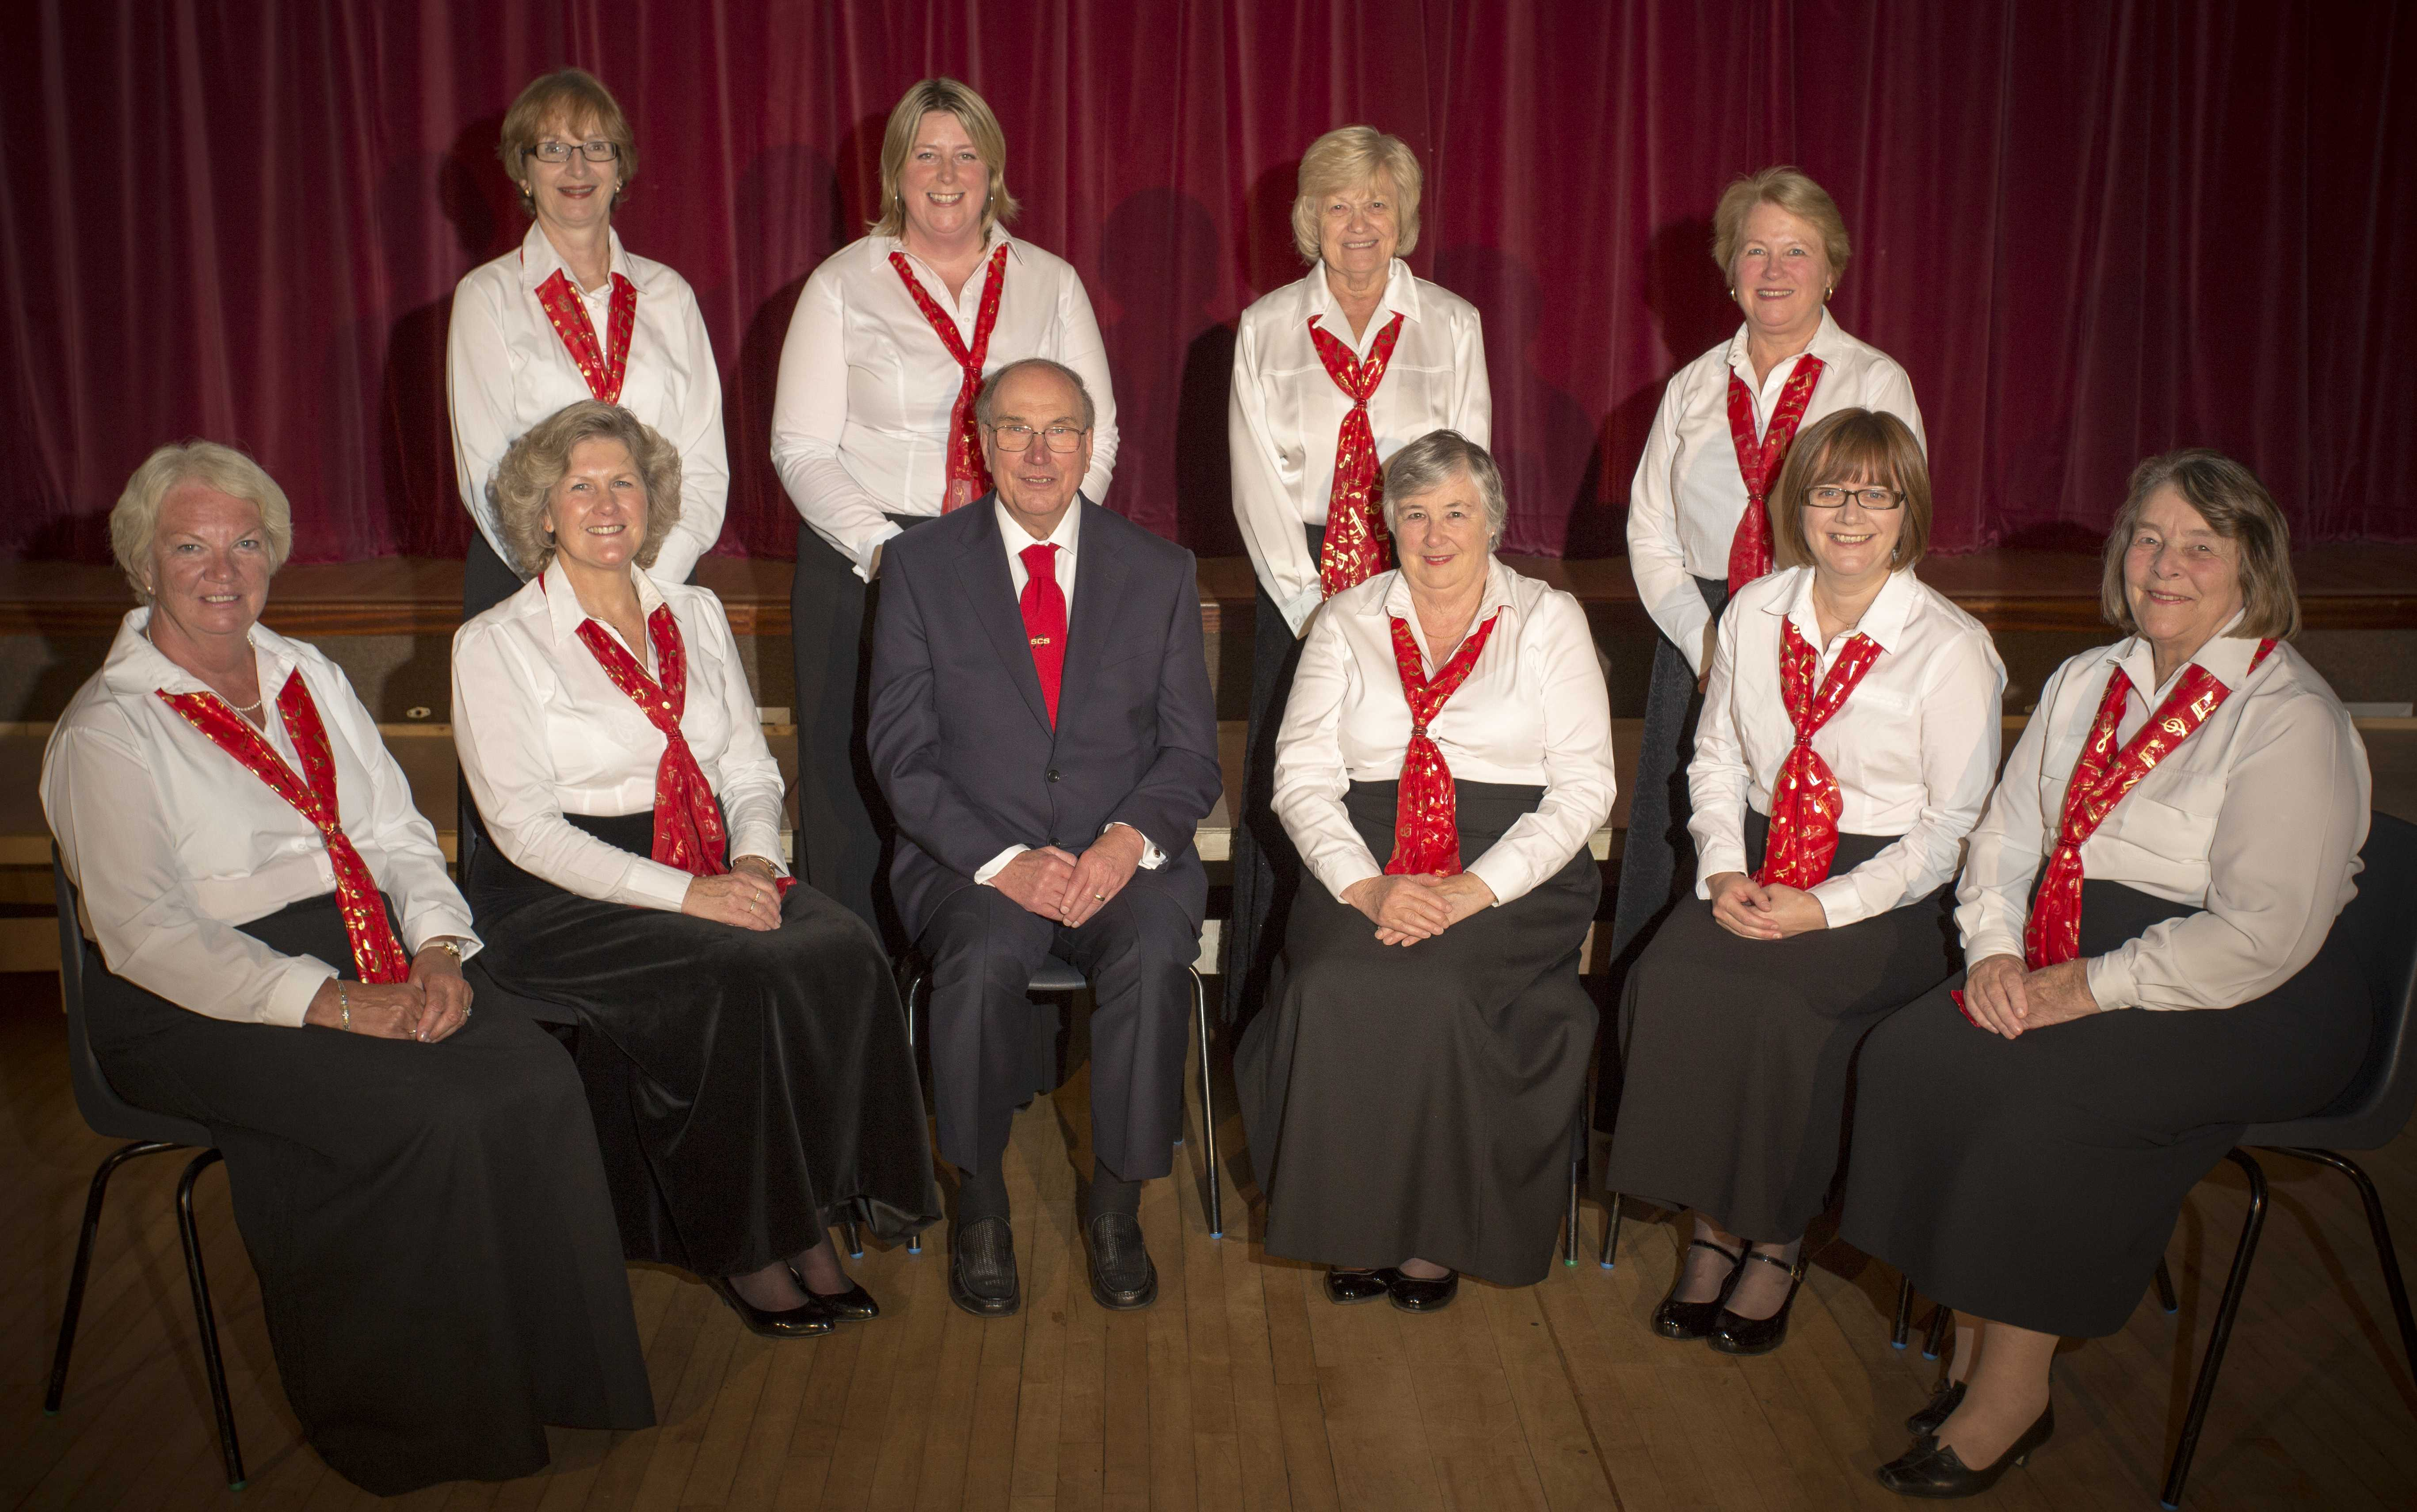 Left to right Front row: Julia Haines (membership secretary), Helen Pearce (secretary), Terry Pearce (musical director), Caroline Miller (chairman), Frances Brightman (treasurer) and Mo Hunt (librarian Back row: Joyce Huddleston (website manager), Abby Evans (publicity), Trish Napper (publicity) and Lindsey Fellingham (librarian)